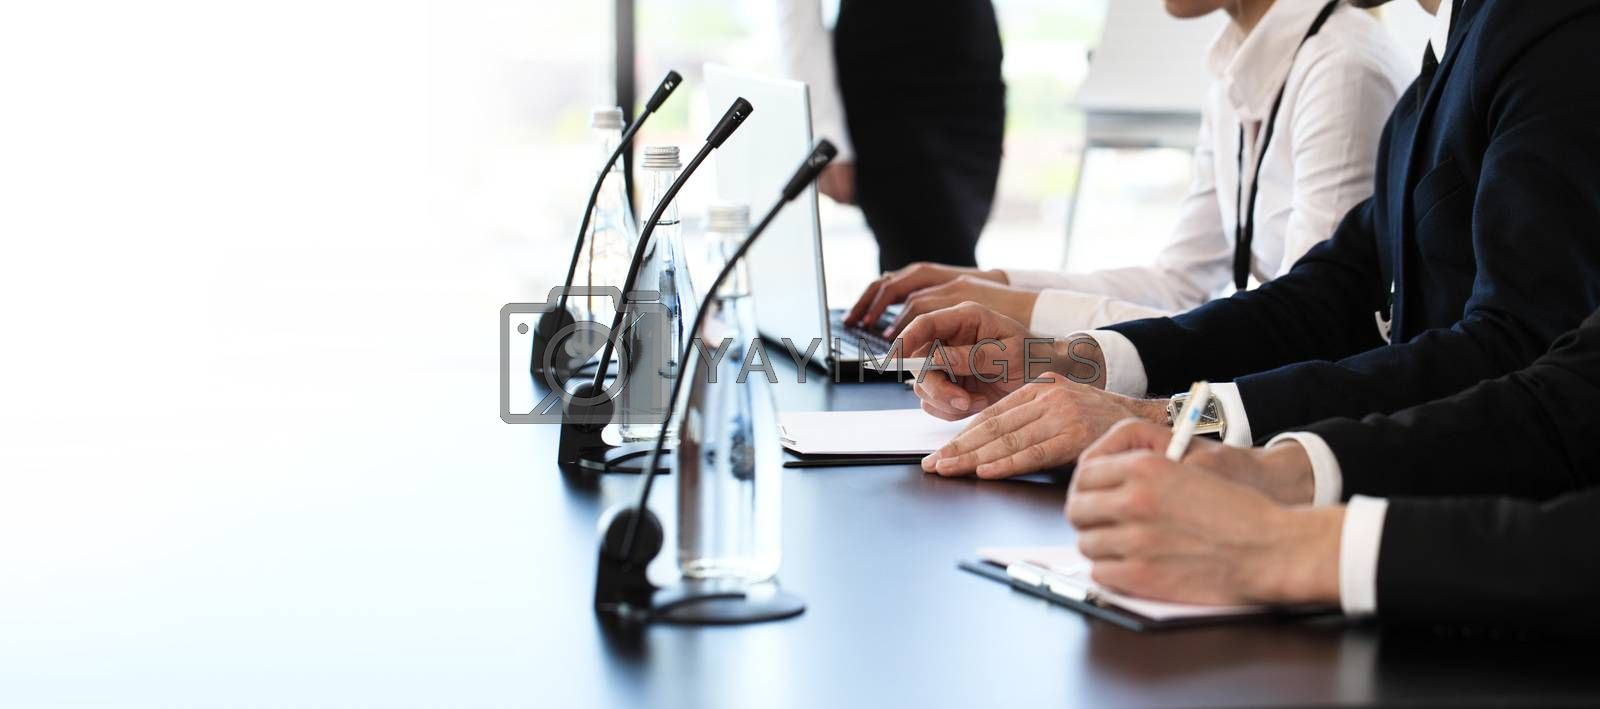 Group of speakers at business meeting at the table with microphones